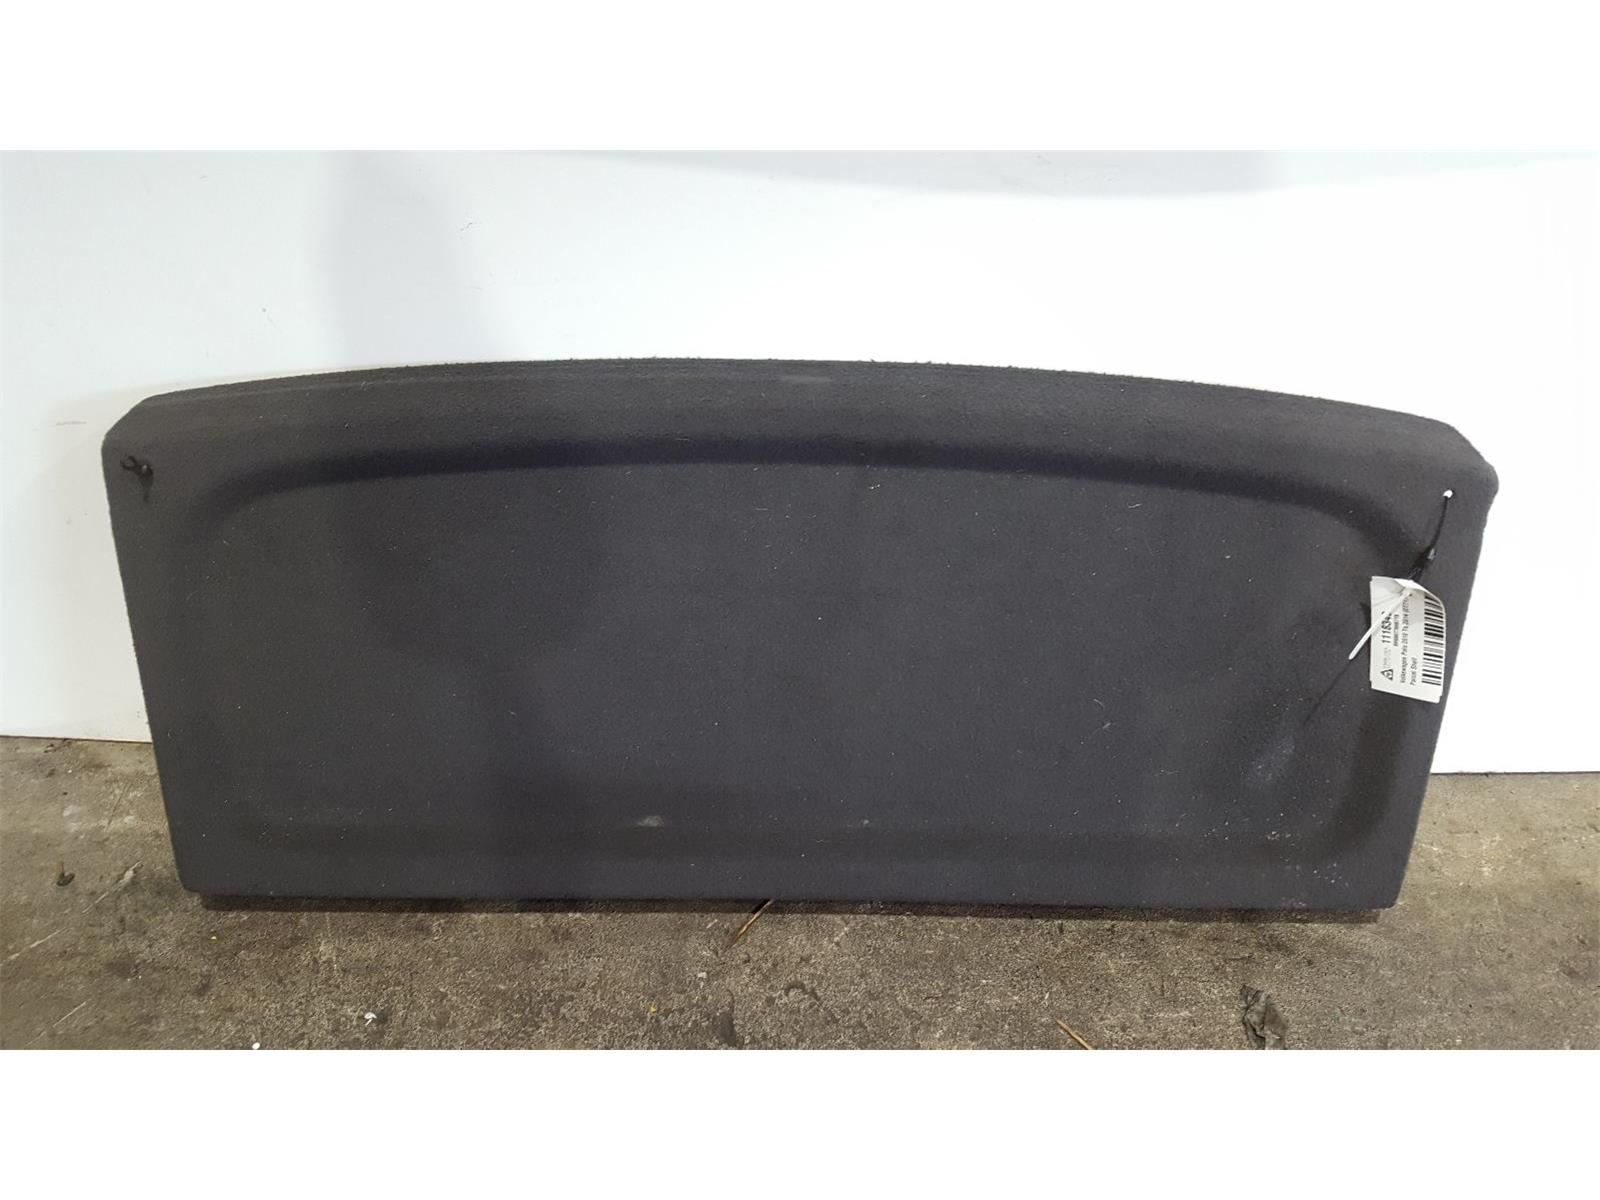 Volkswagen Polo 2010 To 2014 5 Door Hatchback Load Cover Parcel Shelf